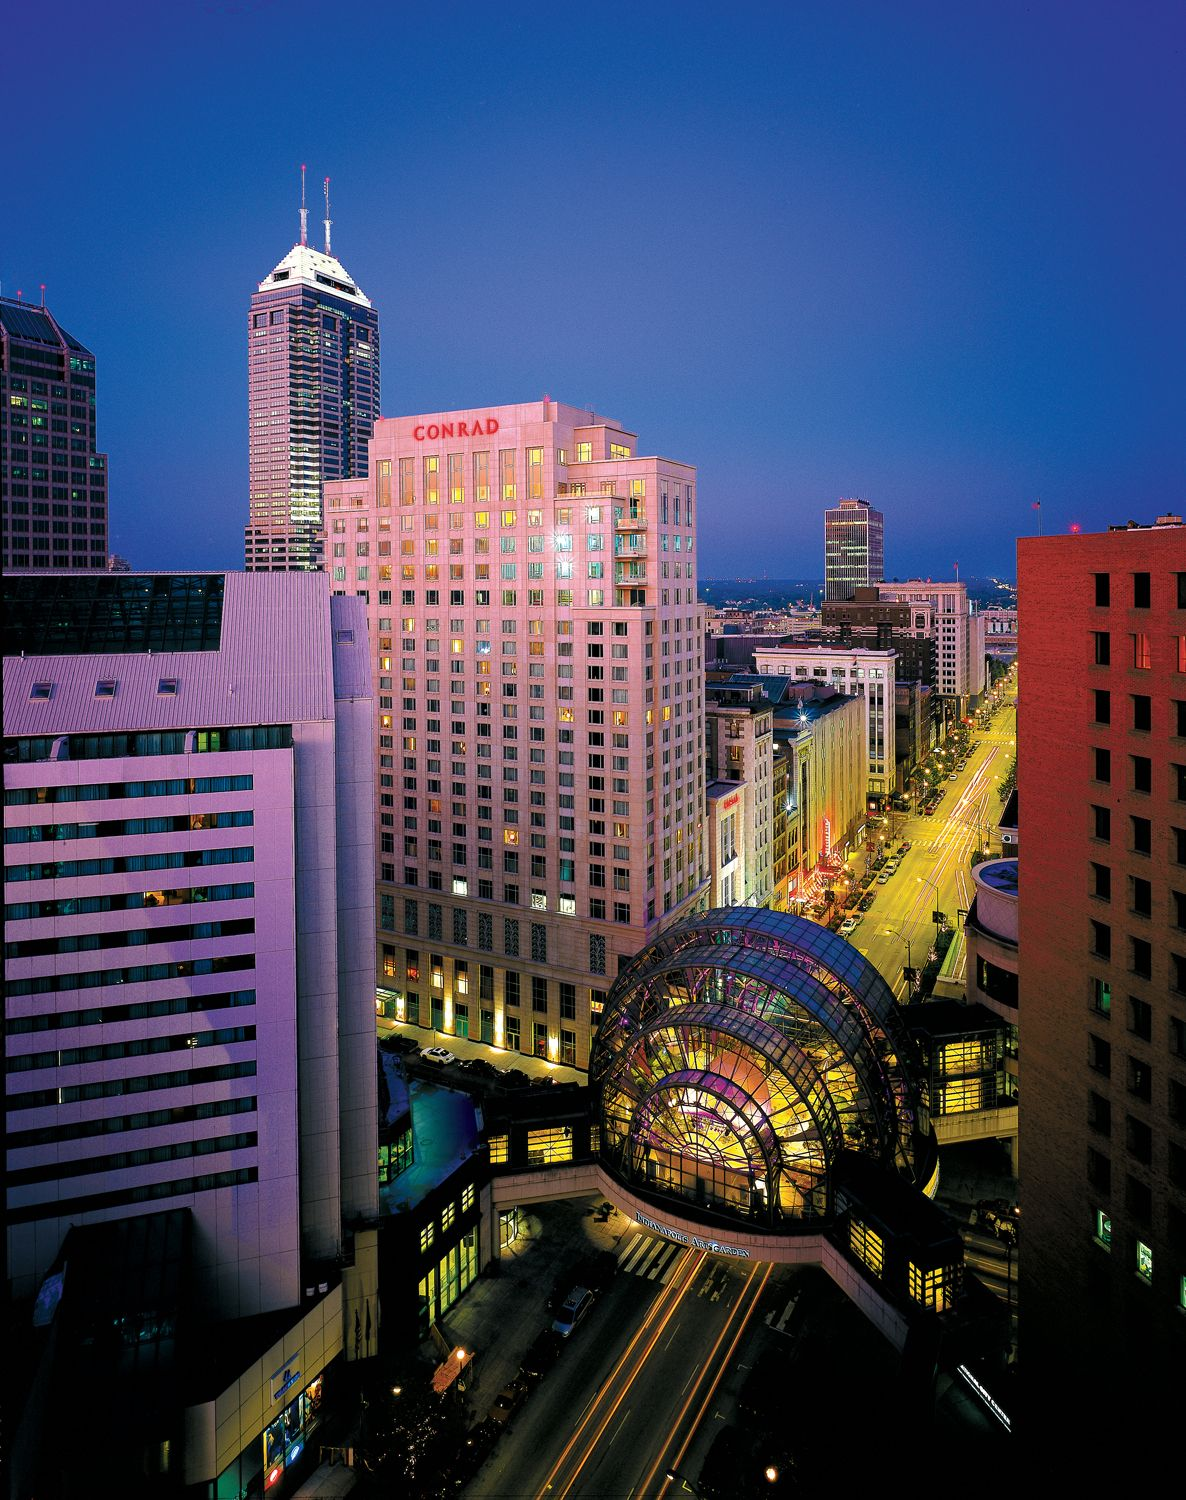 Indianapolis Artsgarden and Conrad Hotel. Indianapolis.